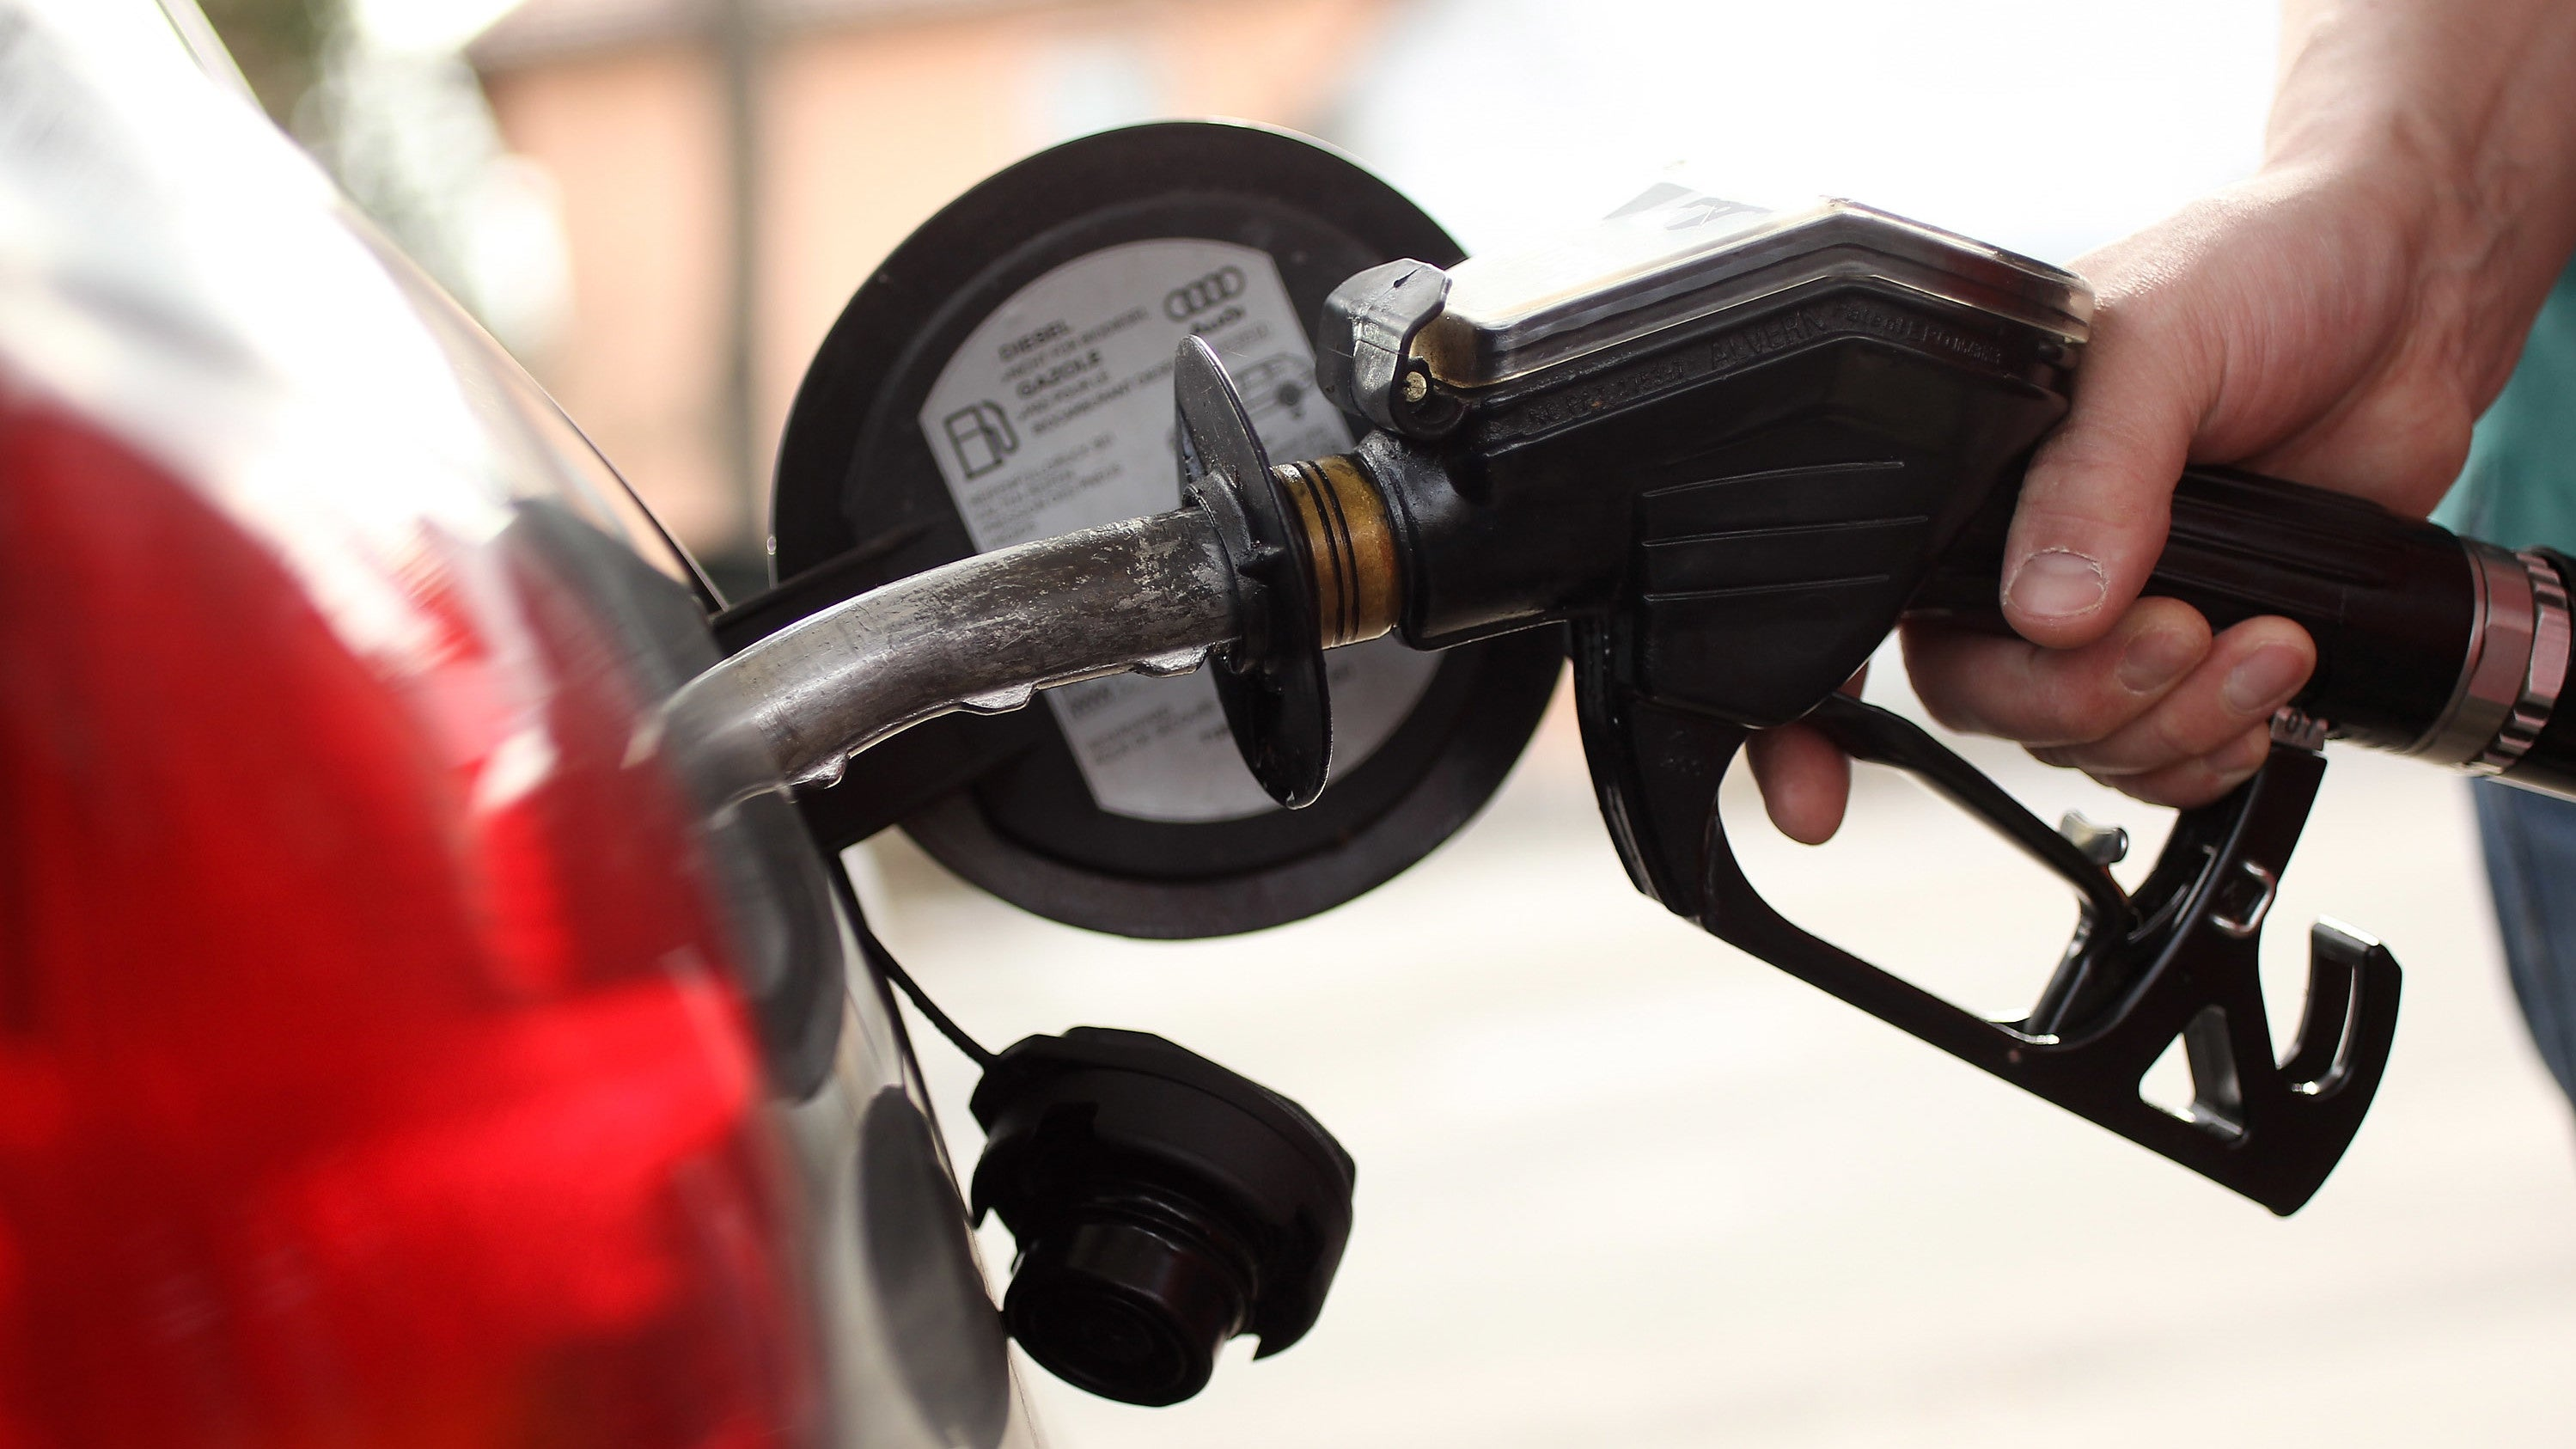 Never Prepay For Petrol When Renting A Car